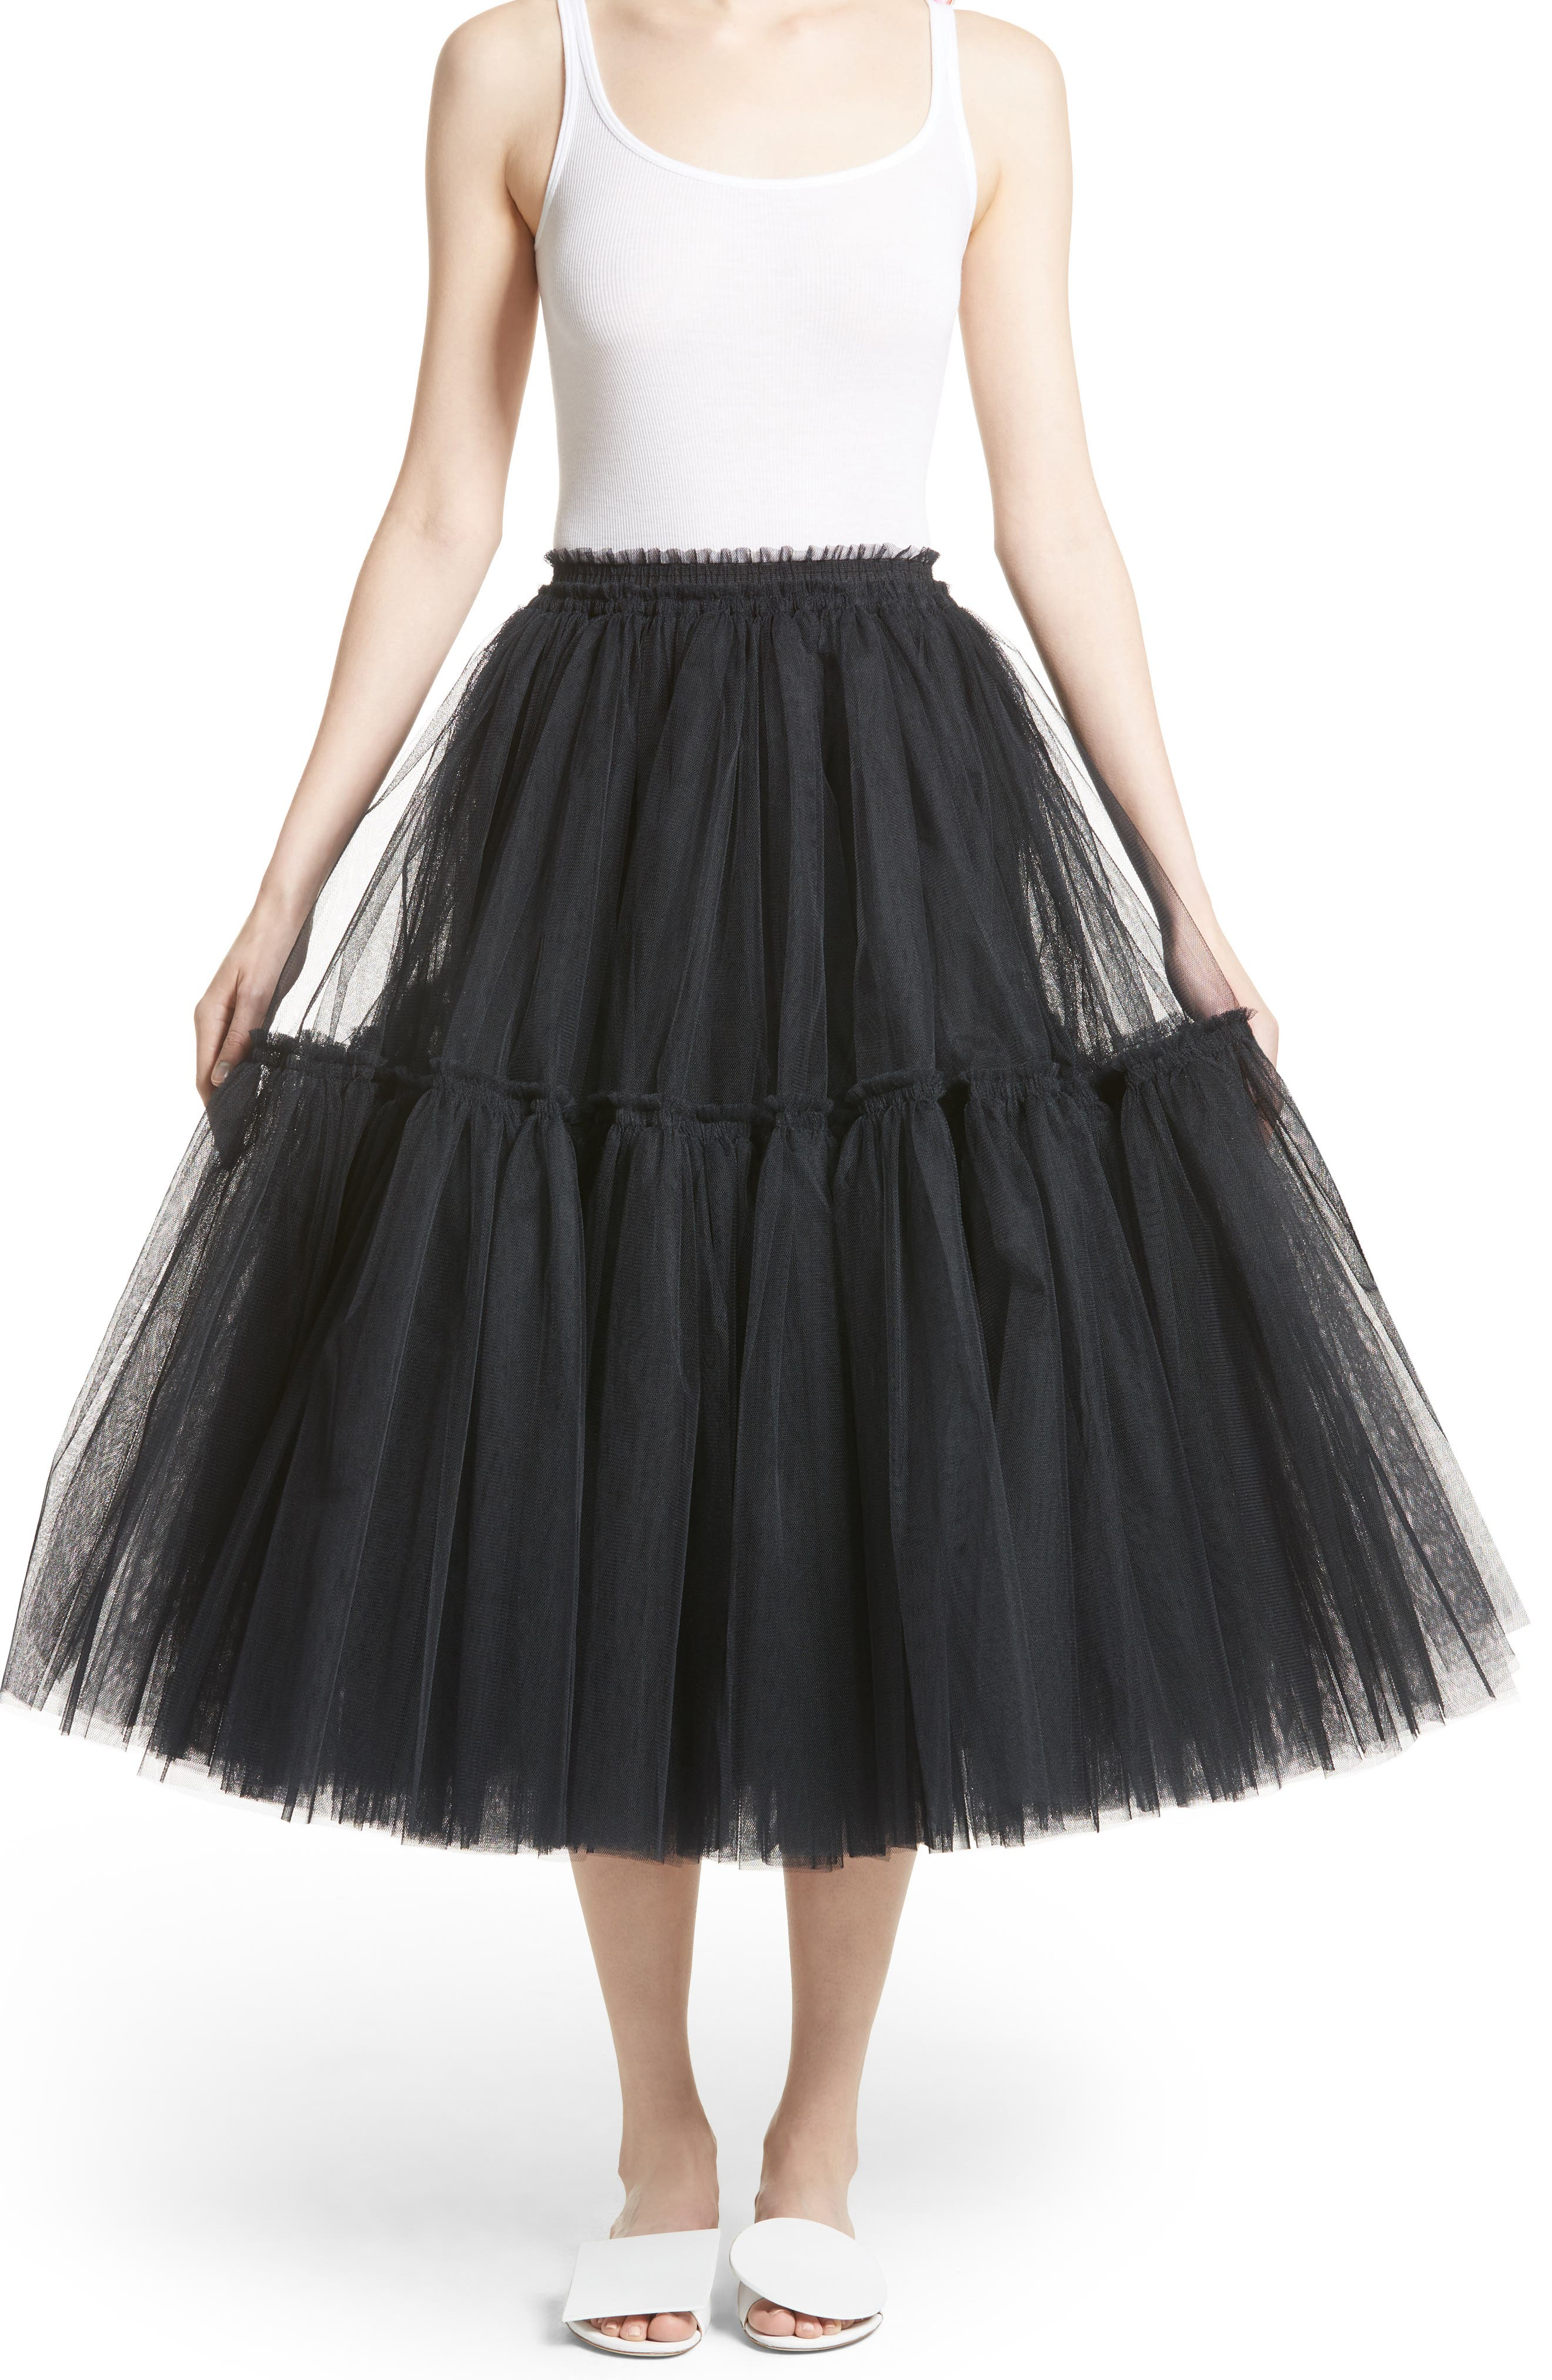 Gathered Tulle Skirt,                             Main thumbnail 1, color,                             Black